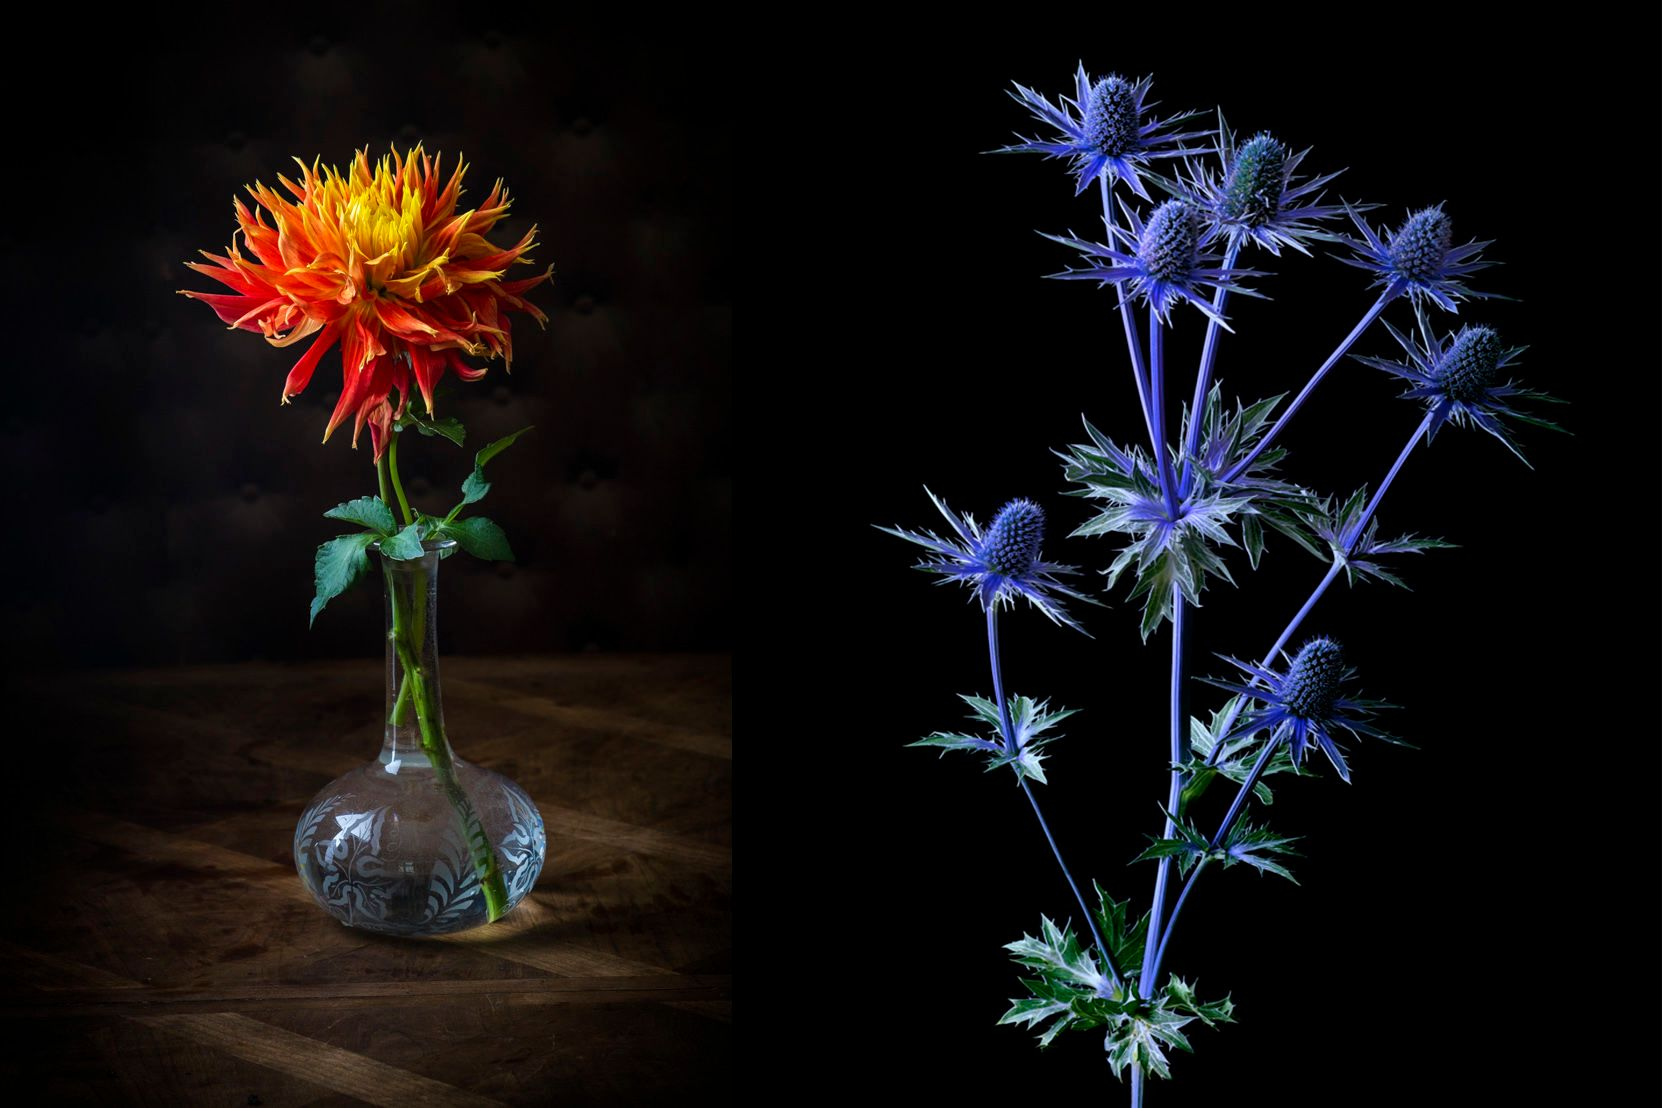 Blue Thistle and Orange Thistle, glass vase